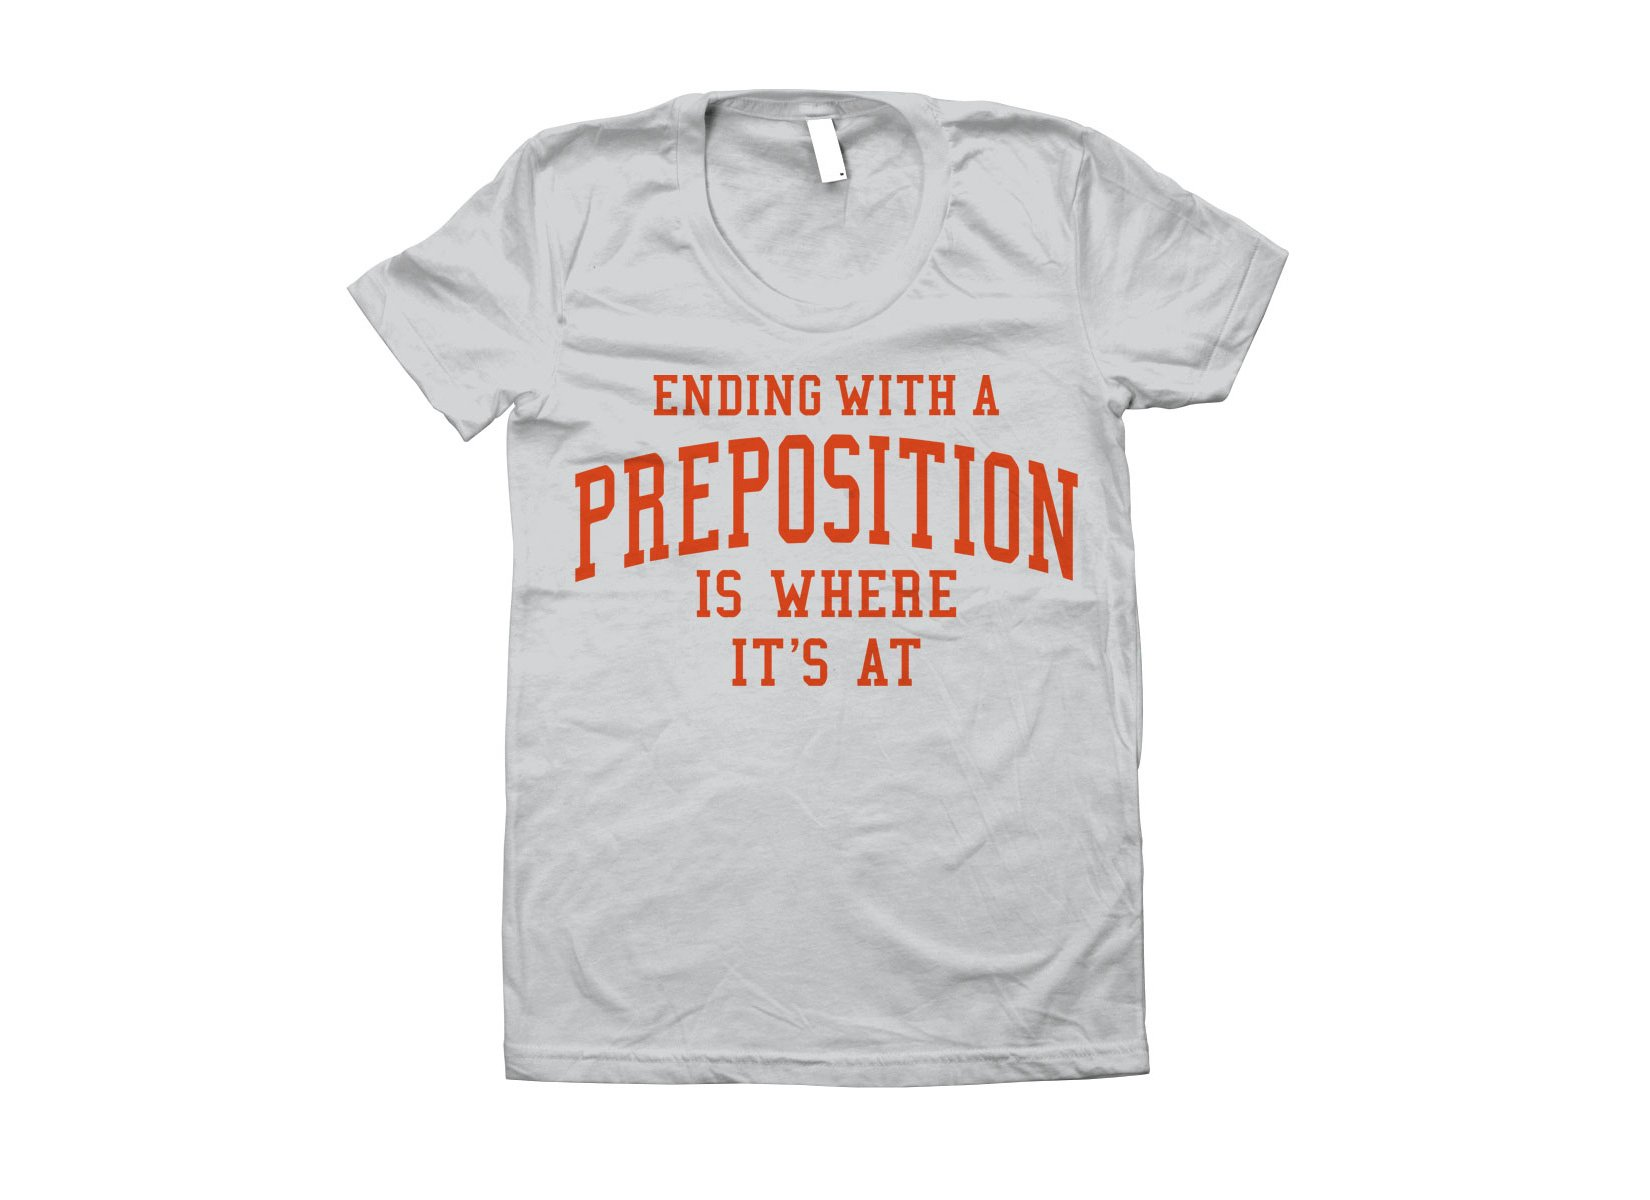 Ending With A Preposition Is Where It's At on Juniors T-Shirt